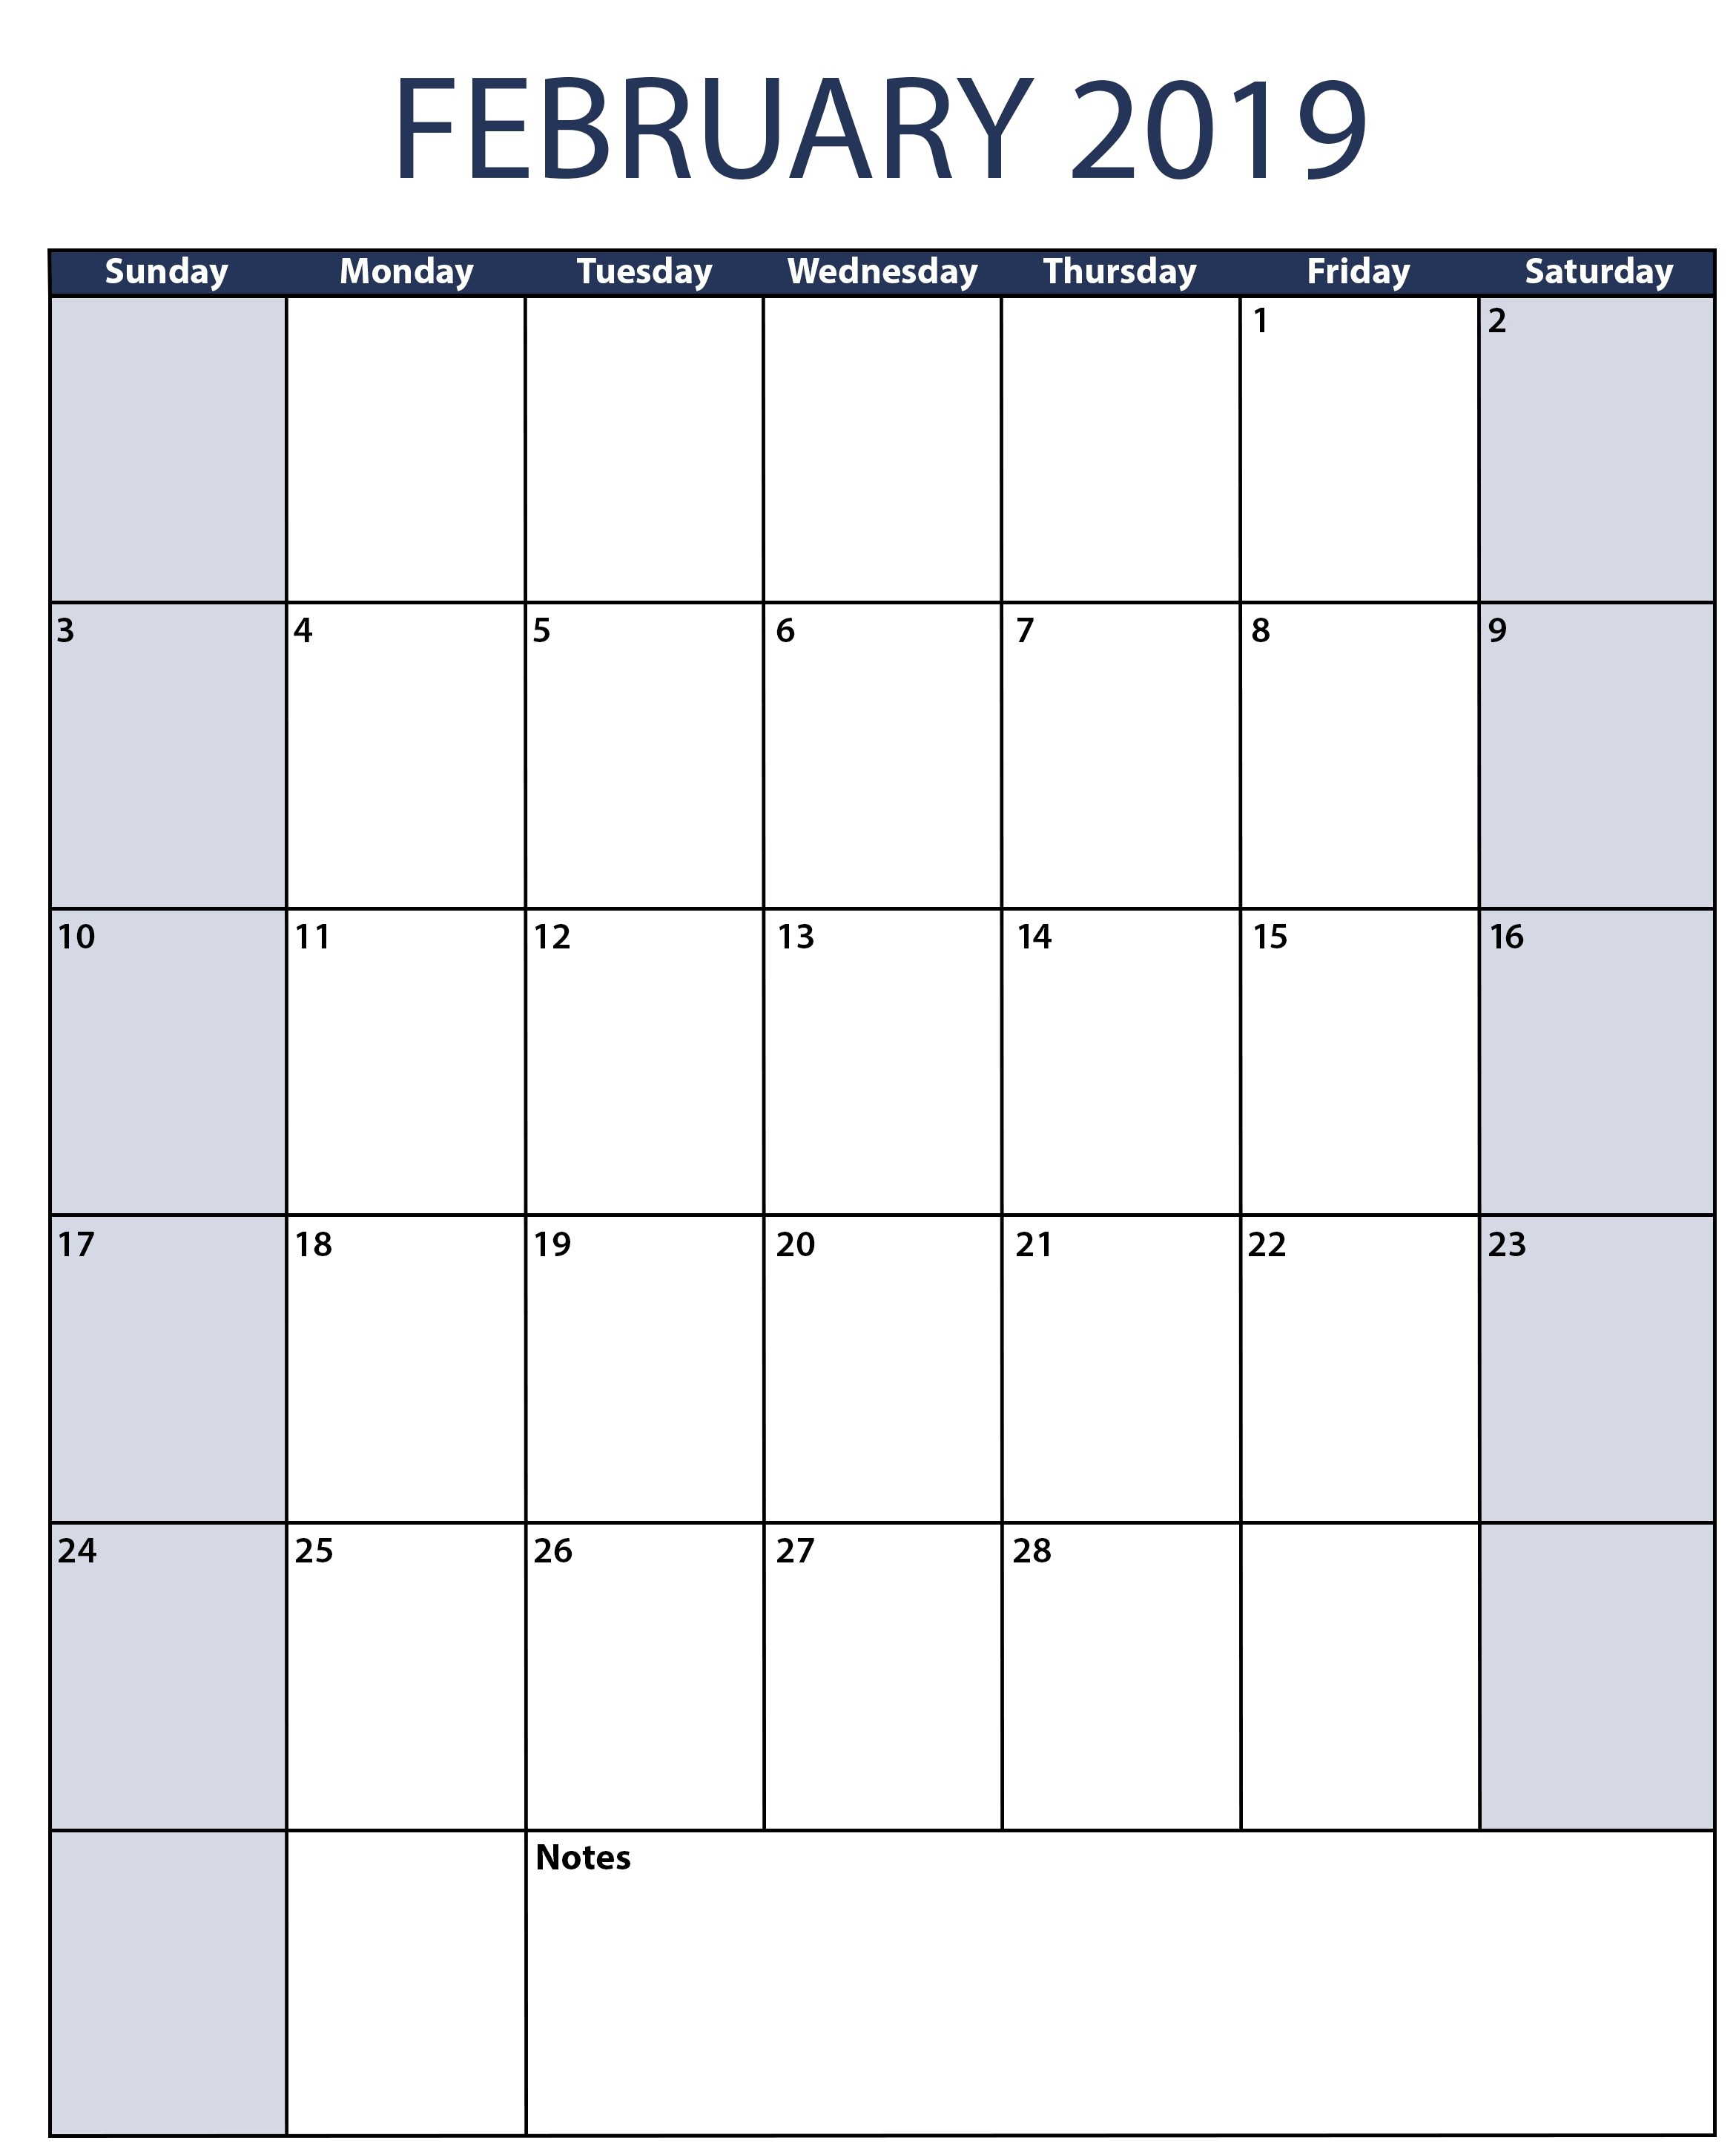 March 2018 Calendar Kalnirnay Más Actual Editable Calendar February 2019 Lara Expolicenciaslatam Of March 2018 Calendar Kalnirnay Más Arriba-a-fecha March Calendar 2015 Blank September 2016 Calendar Free to and Print